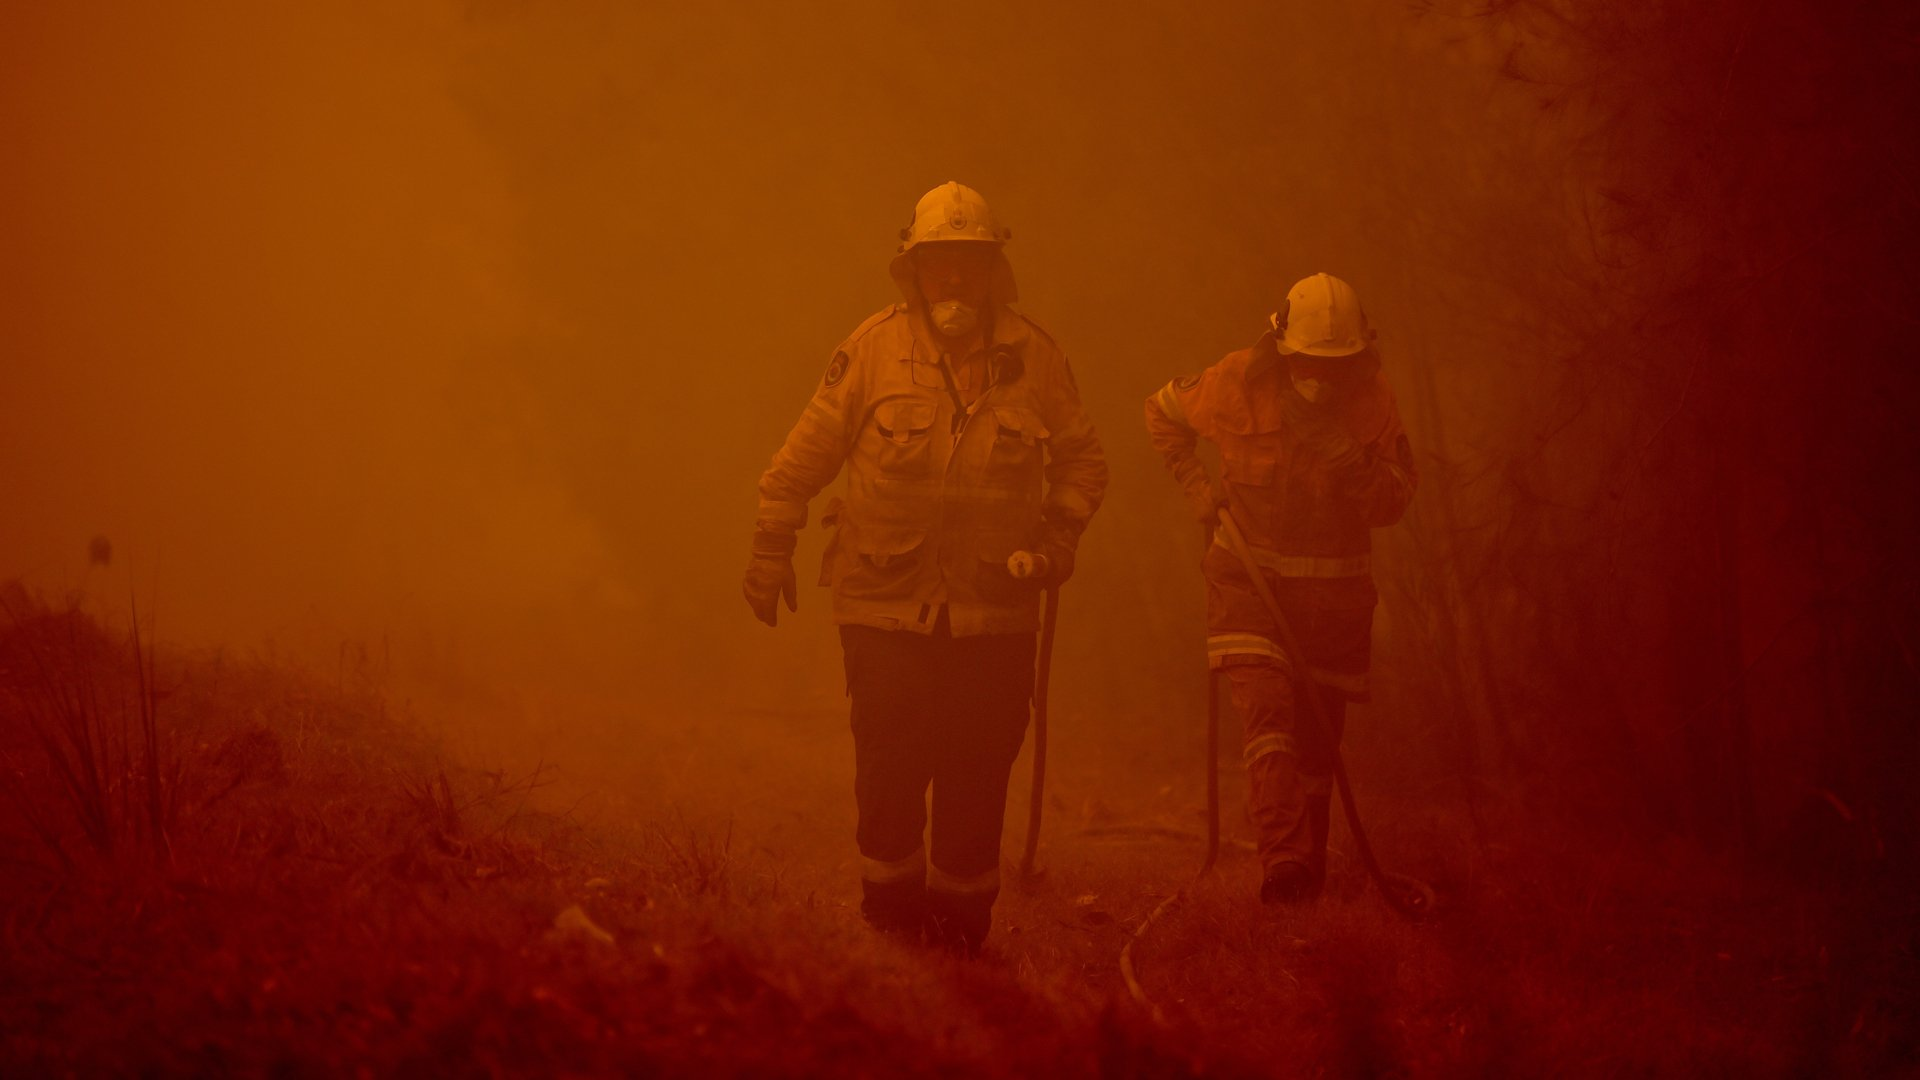 Firefighters tackle a bushfire in thick smoke in the town of Moruya, south of Batemans Bay, in New South Wales on January 4, 2020. (Credit: PETER PARKS/AFP via Getty Images)